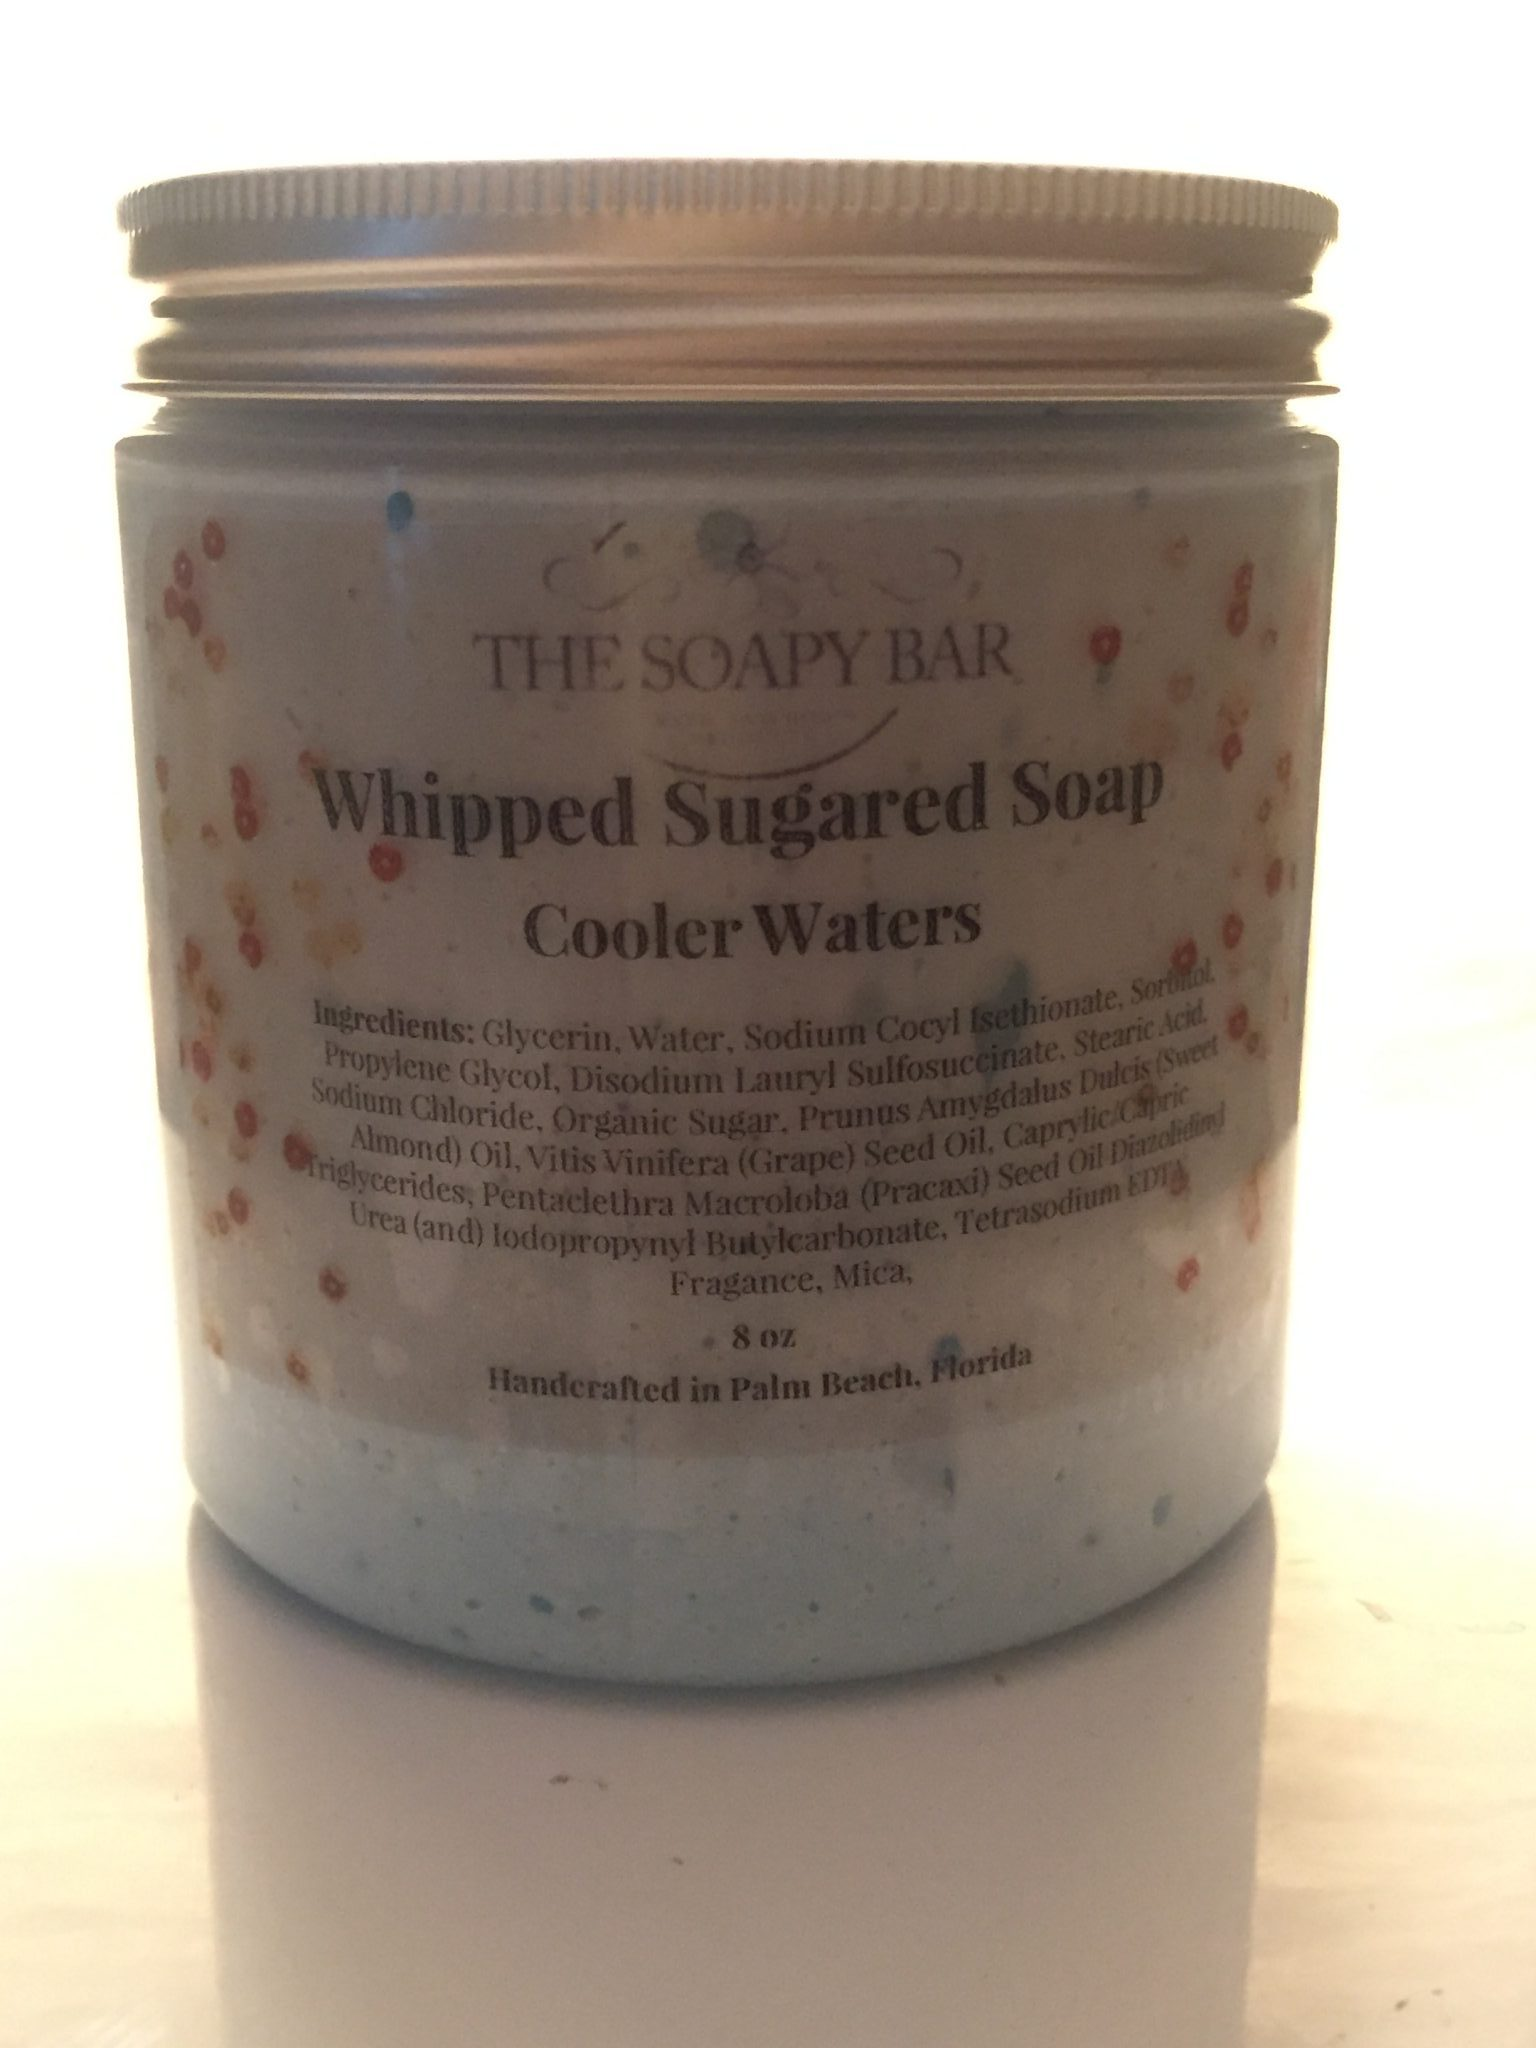 Cooler Waters Whipped Sugared Soap